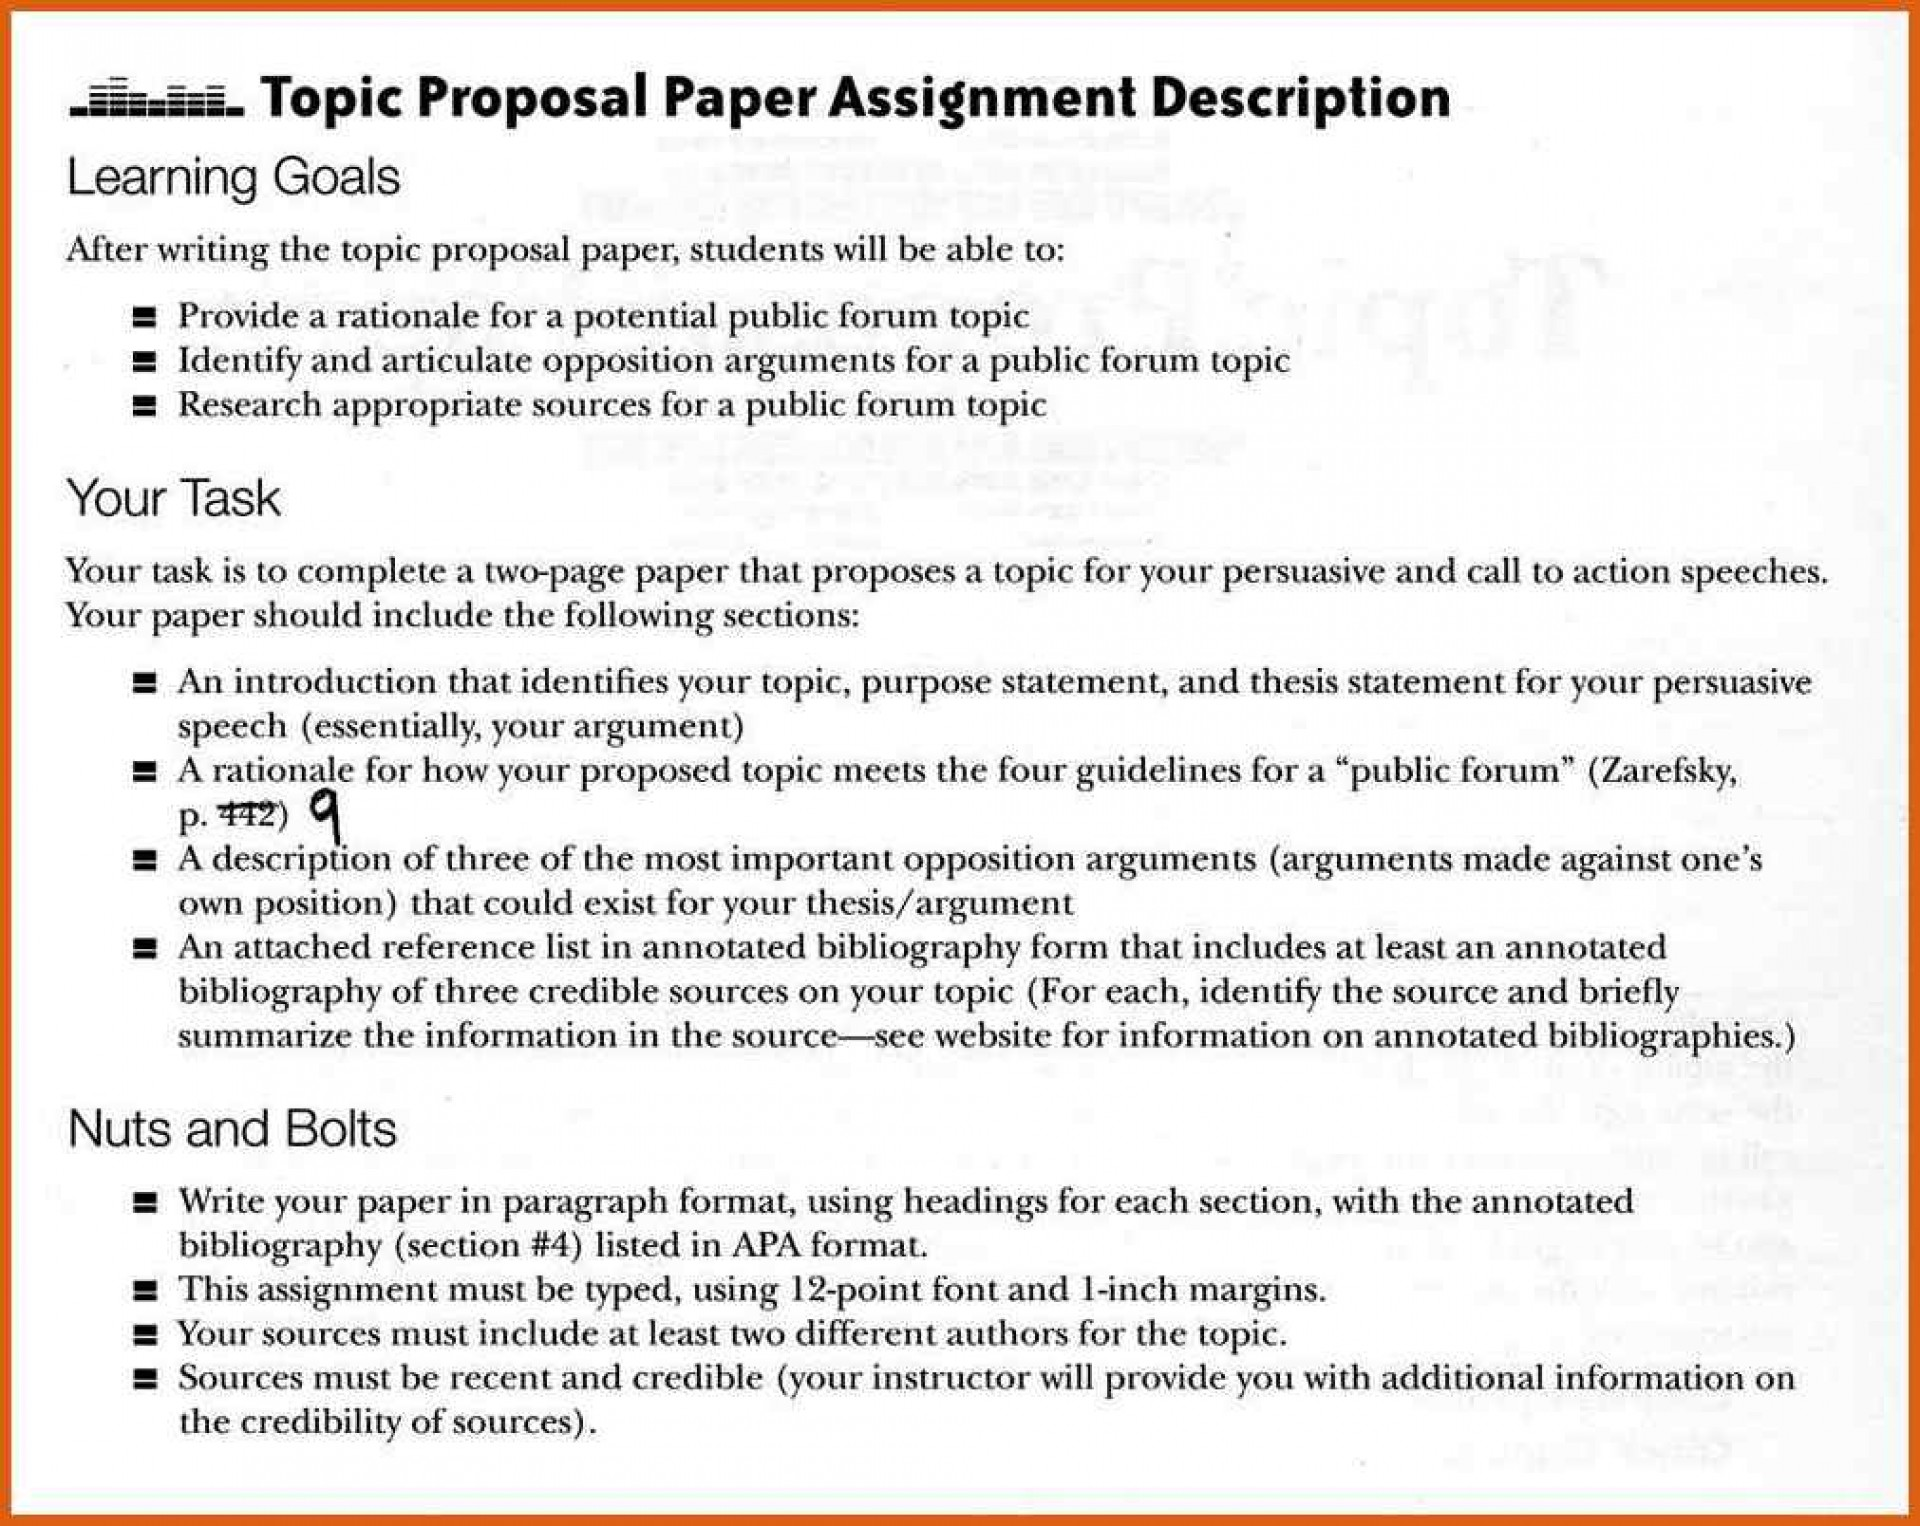 005 Awesome Collection Of George Washingtonsay Paper College English Topics With Creative Example Research Proposal In Apa Format Unique University Washington Essay Application Examples Prompts Bothell Prompt 1920